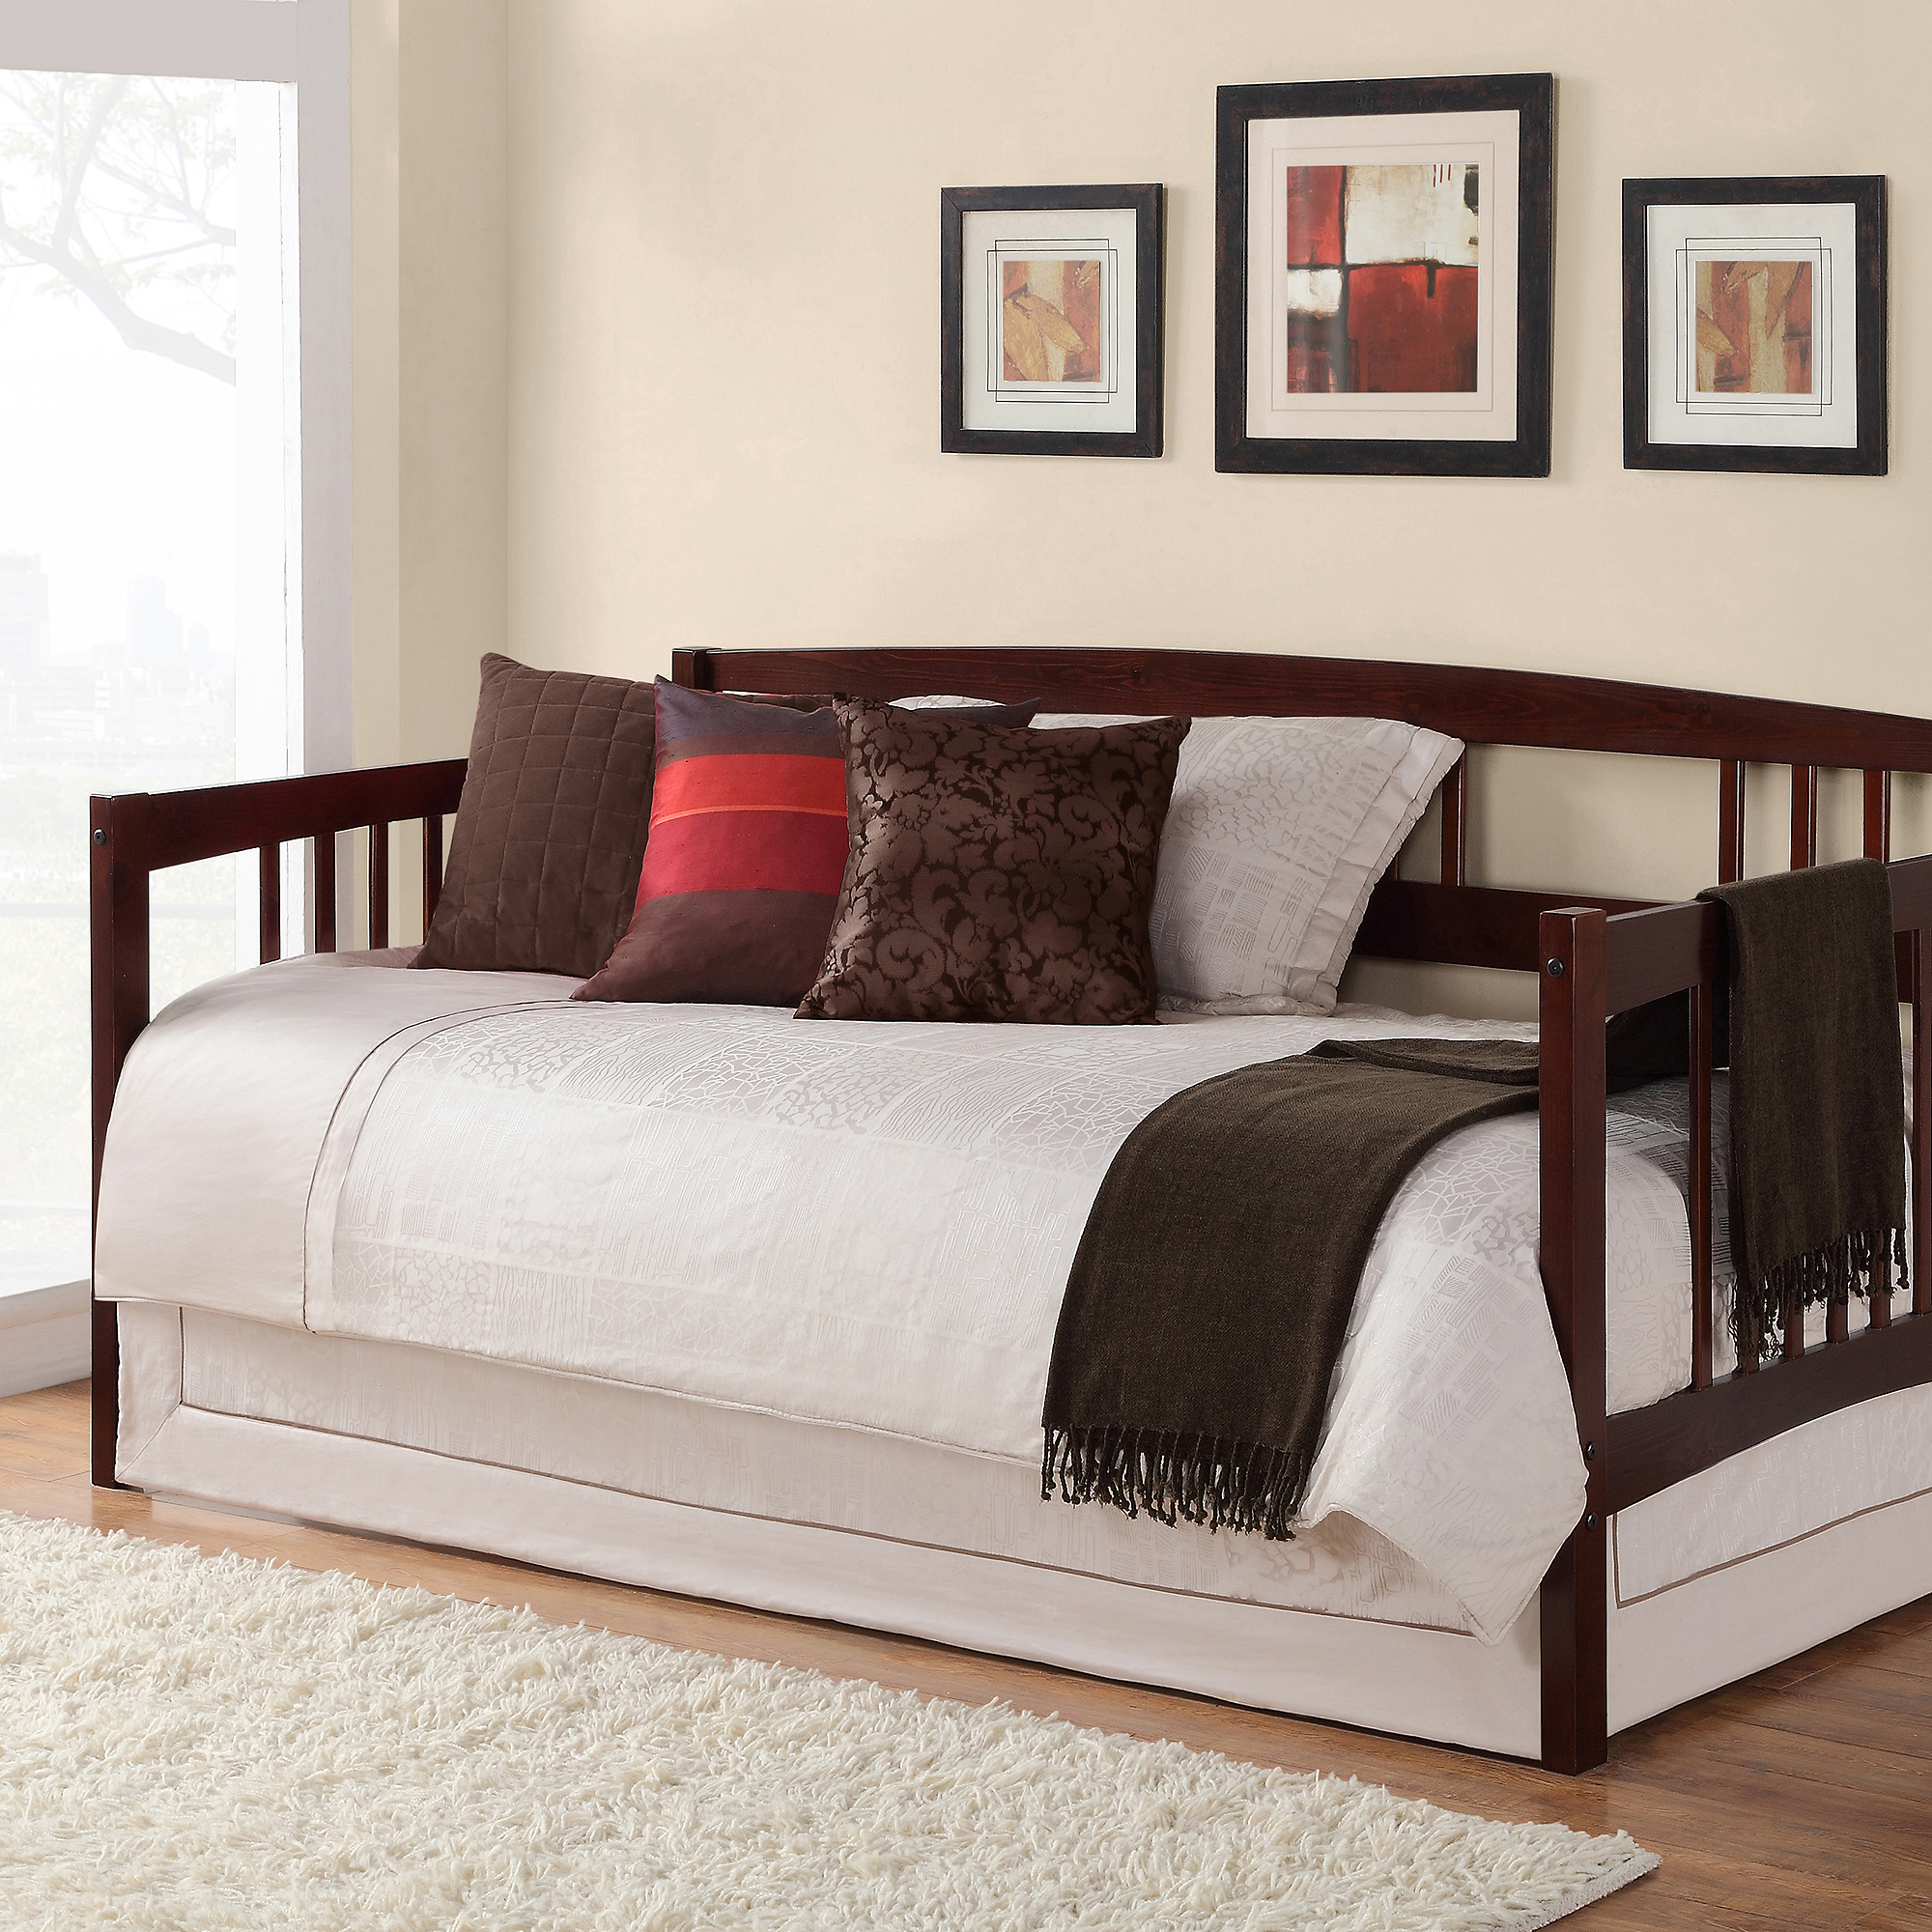 Cheap Daybeds | Queen Daybed Frame | Daybed with Trundle for Sale Cheap